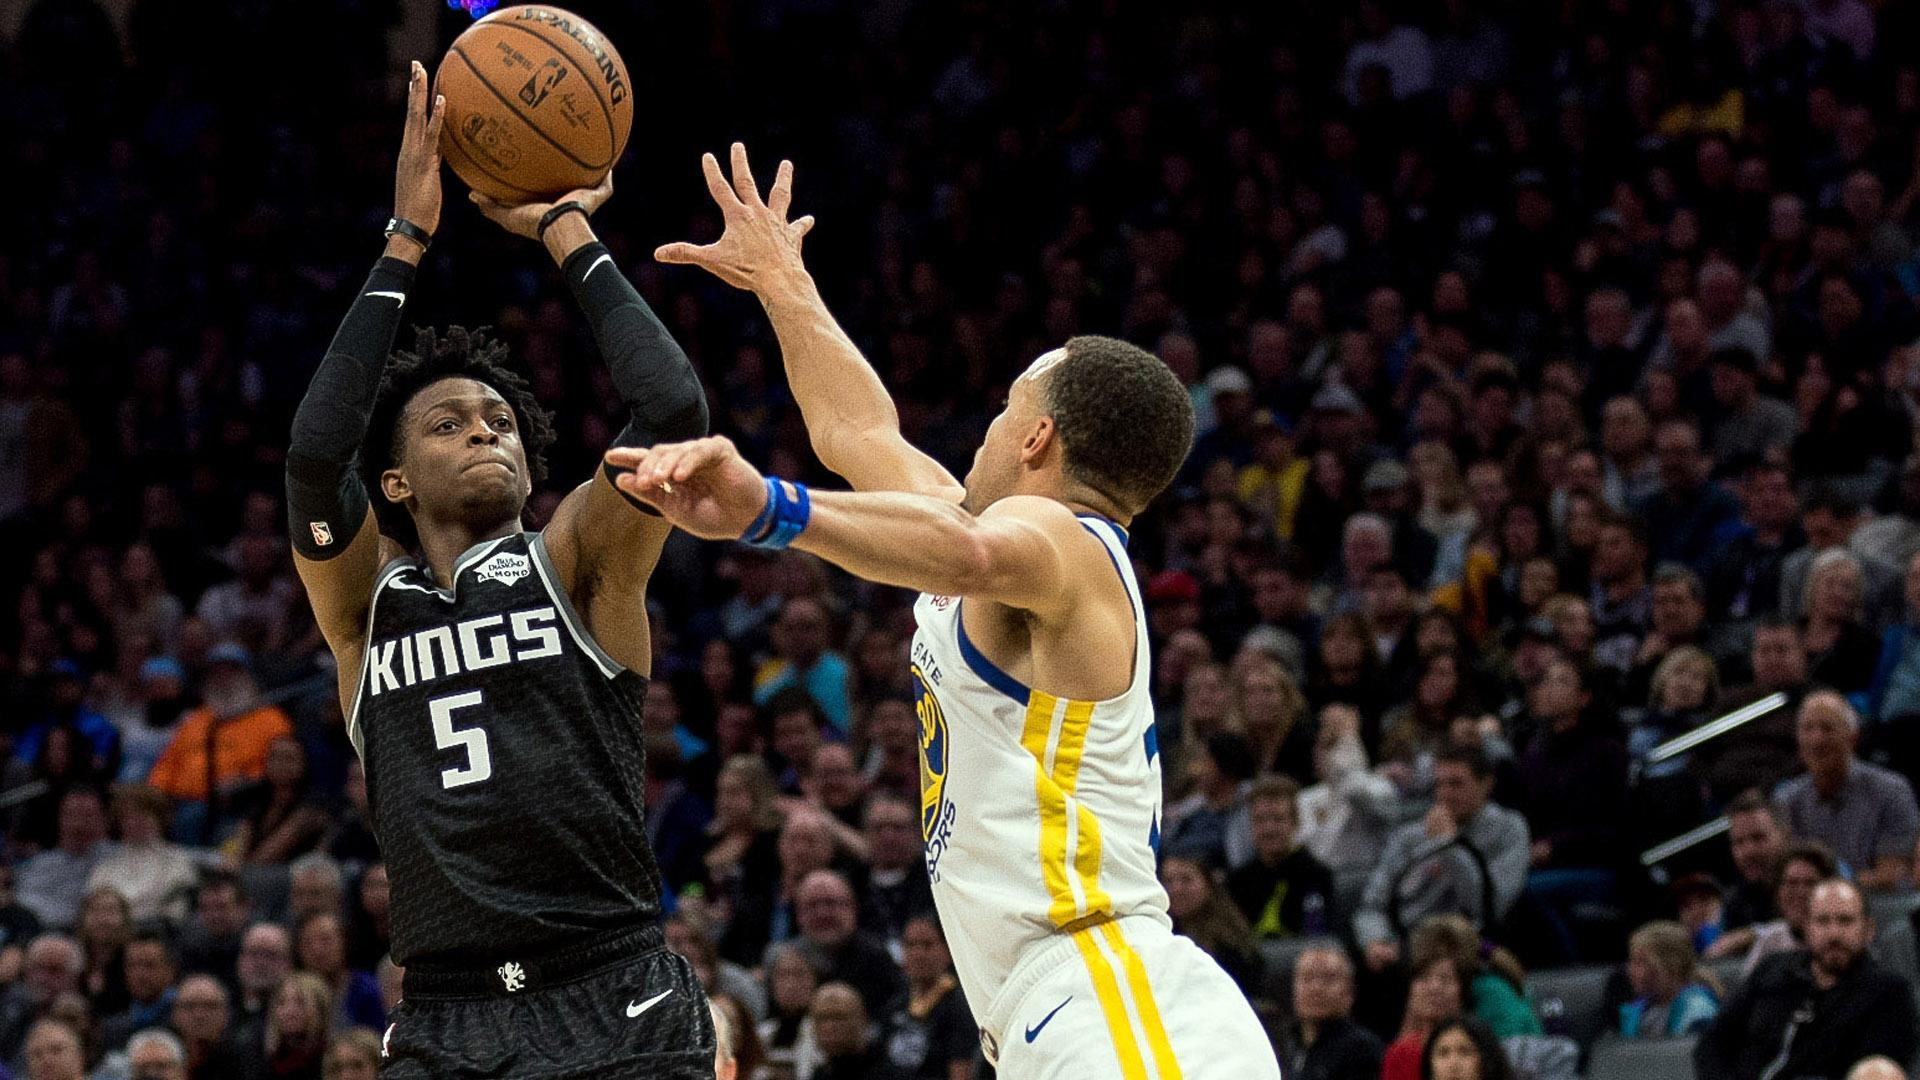 Kings' rise to playoff contention should resonate with true Warriors fans